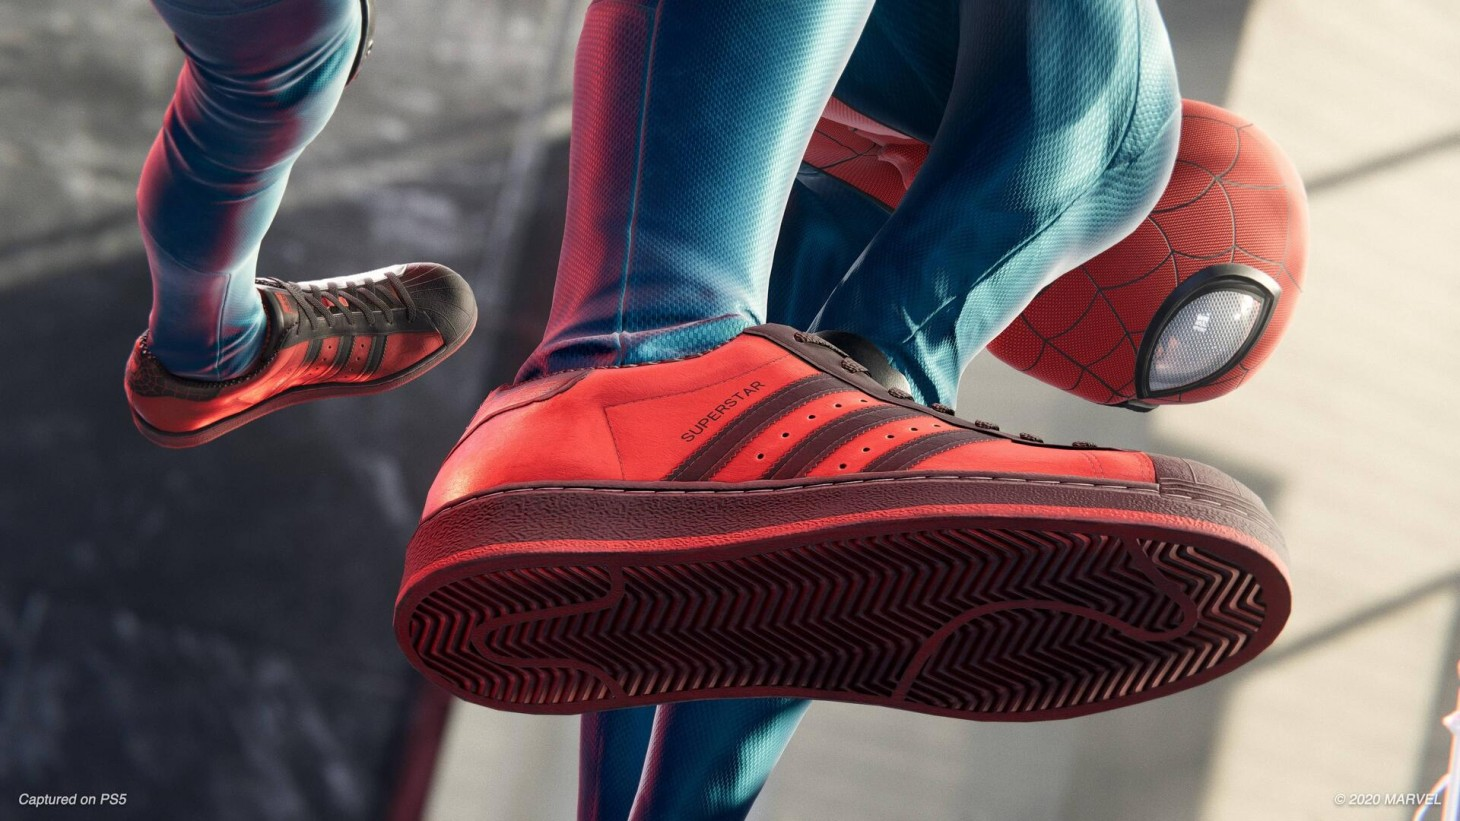 Miles Morales Adidas Shoes Releasing